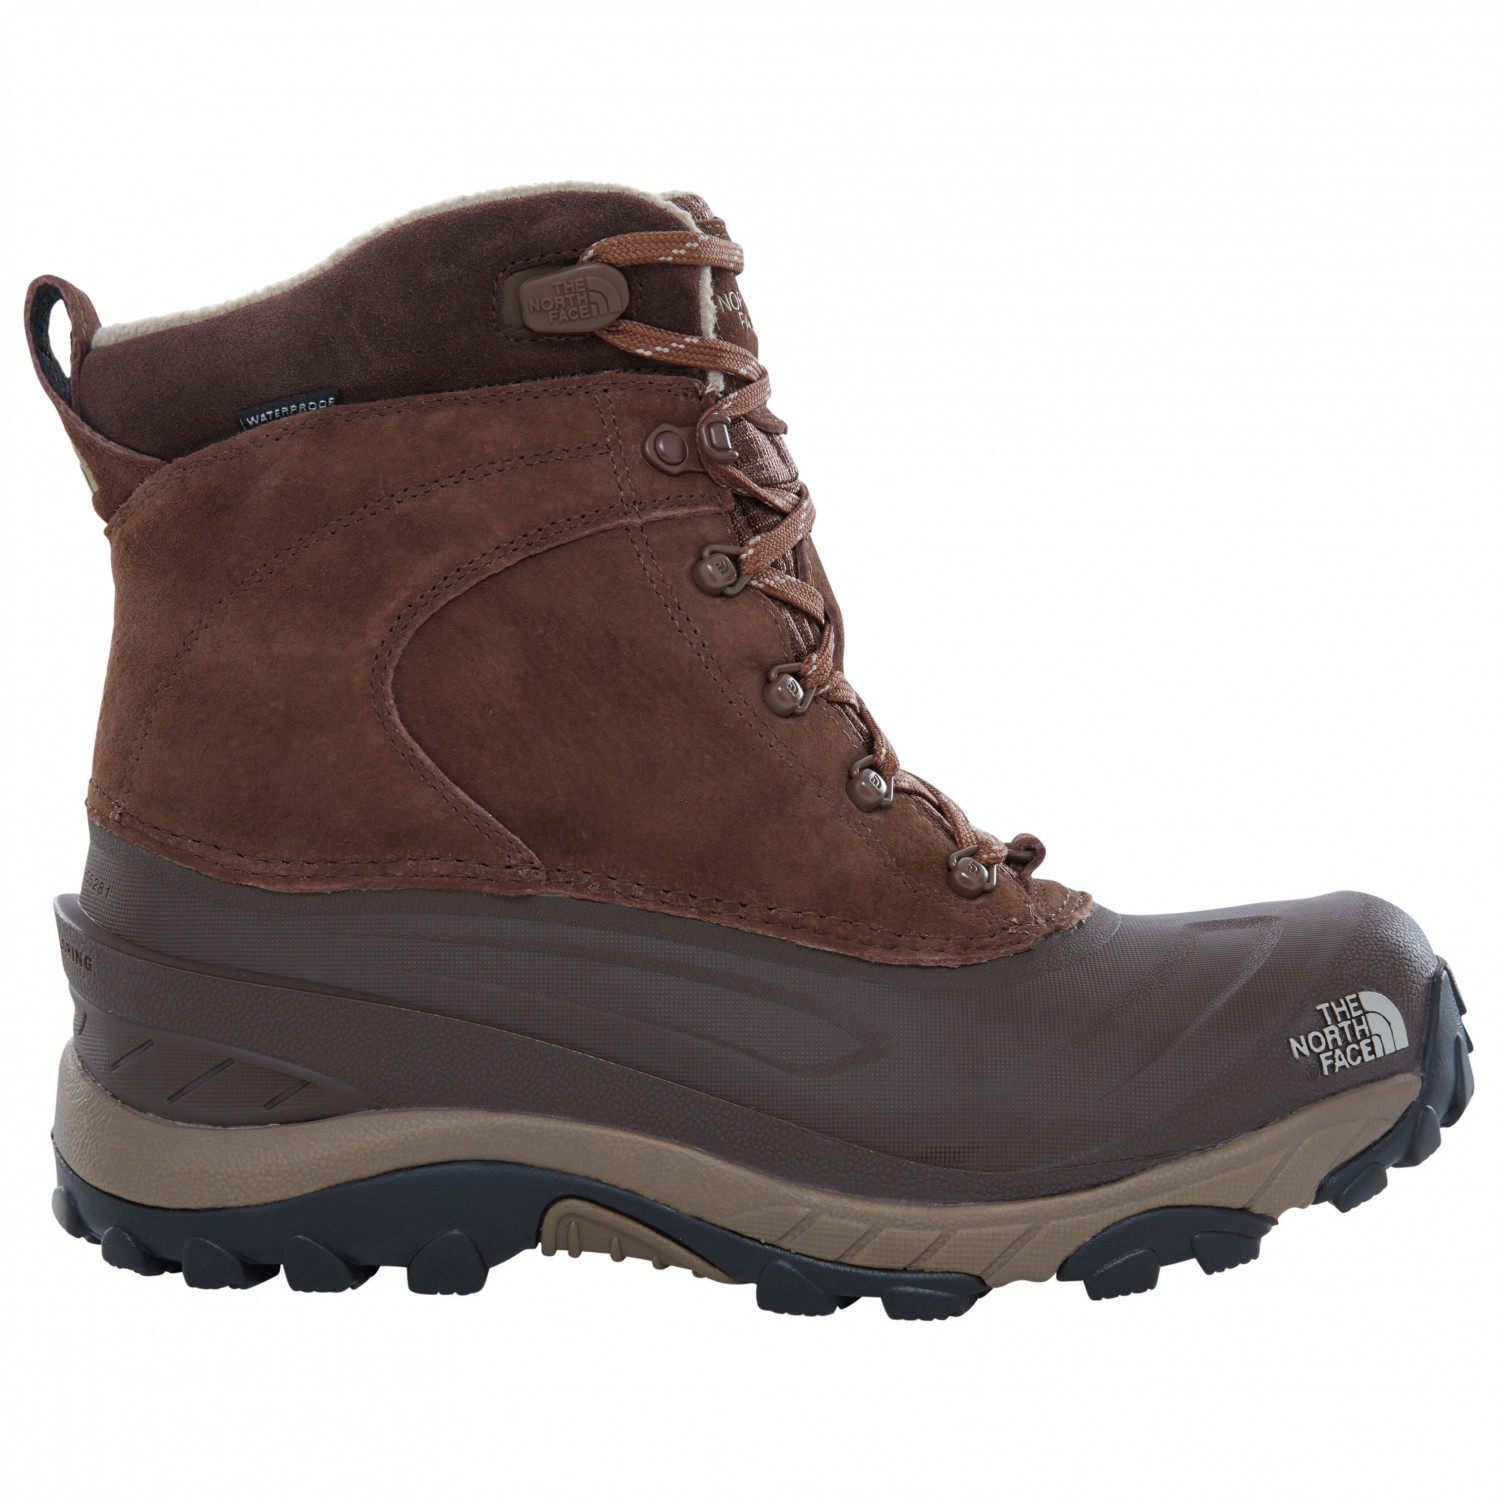 The North Face Chilkat Iii Winter Boots Men S Free Uk Delivery Alpinetrek Co Uk